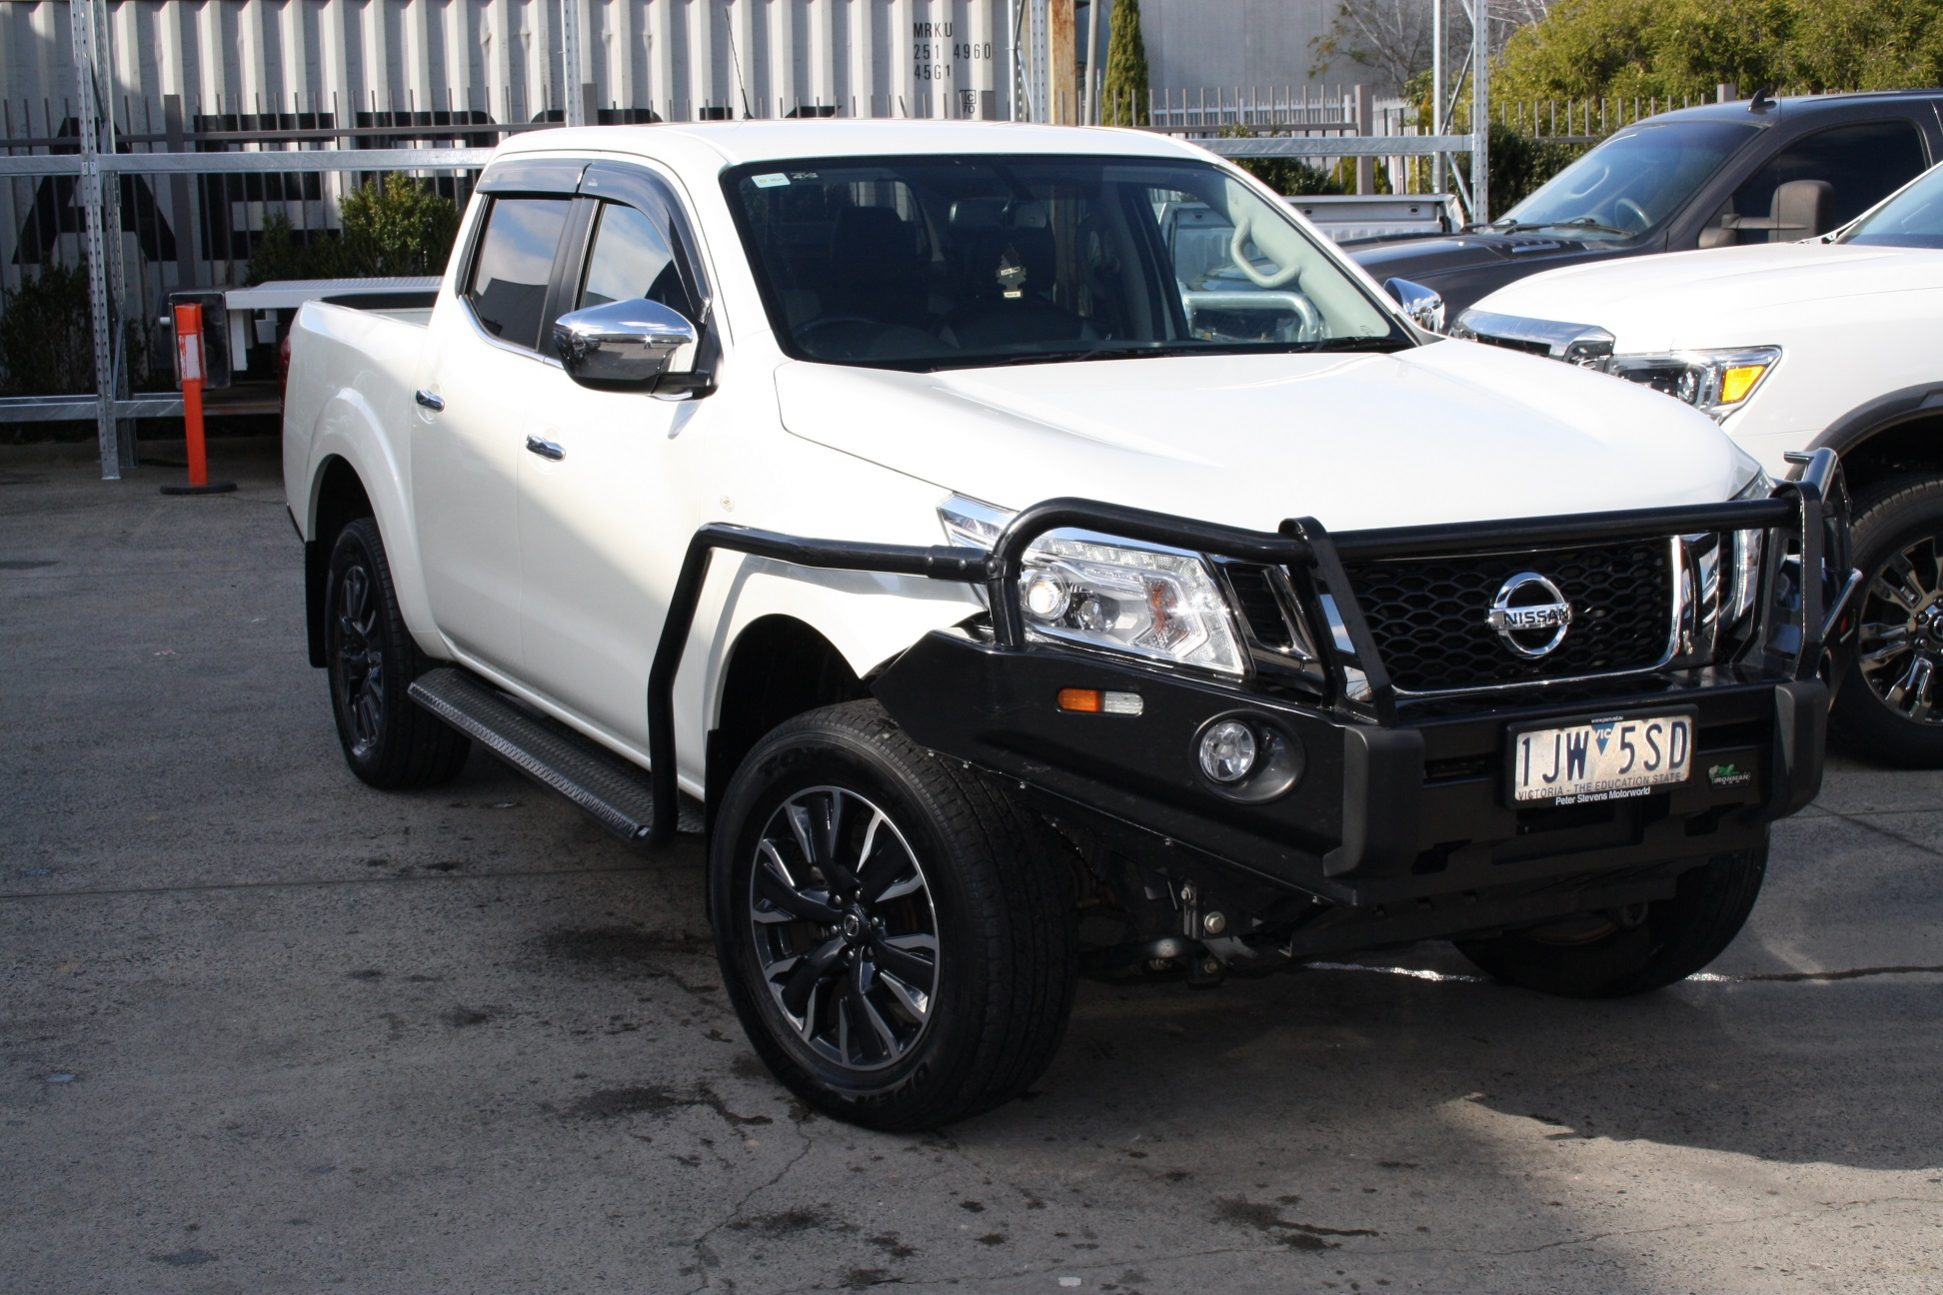 2017 pre owned nissan navara d23 series st n sport american cars trucks suvs rhd. Black Bedroom Furniture Sets. Home Design Ideas